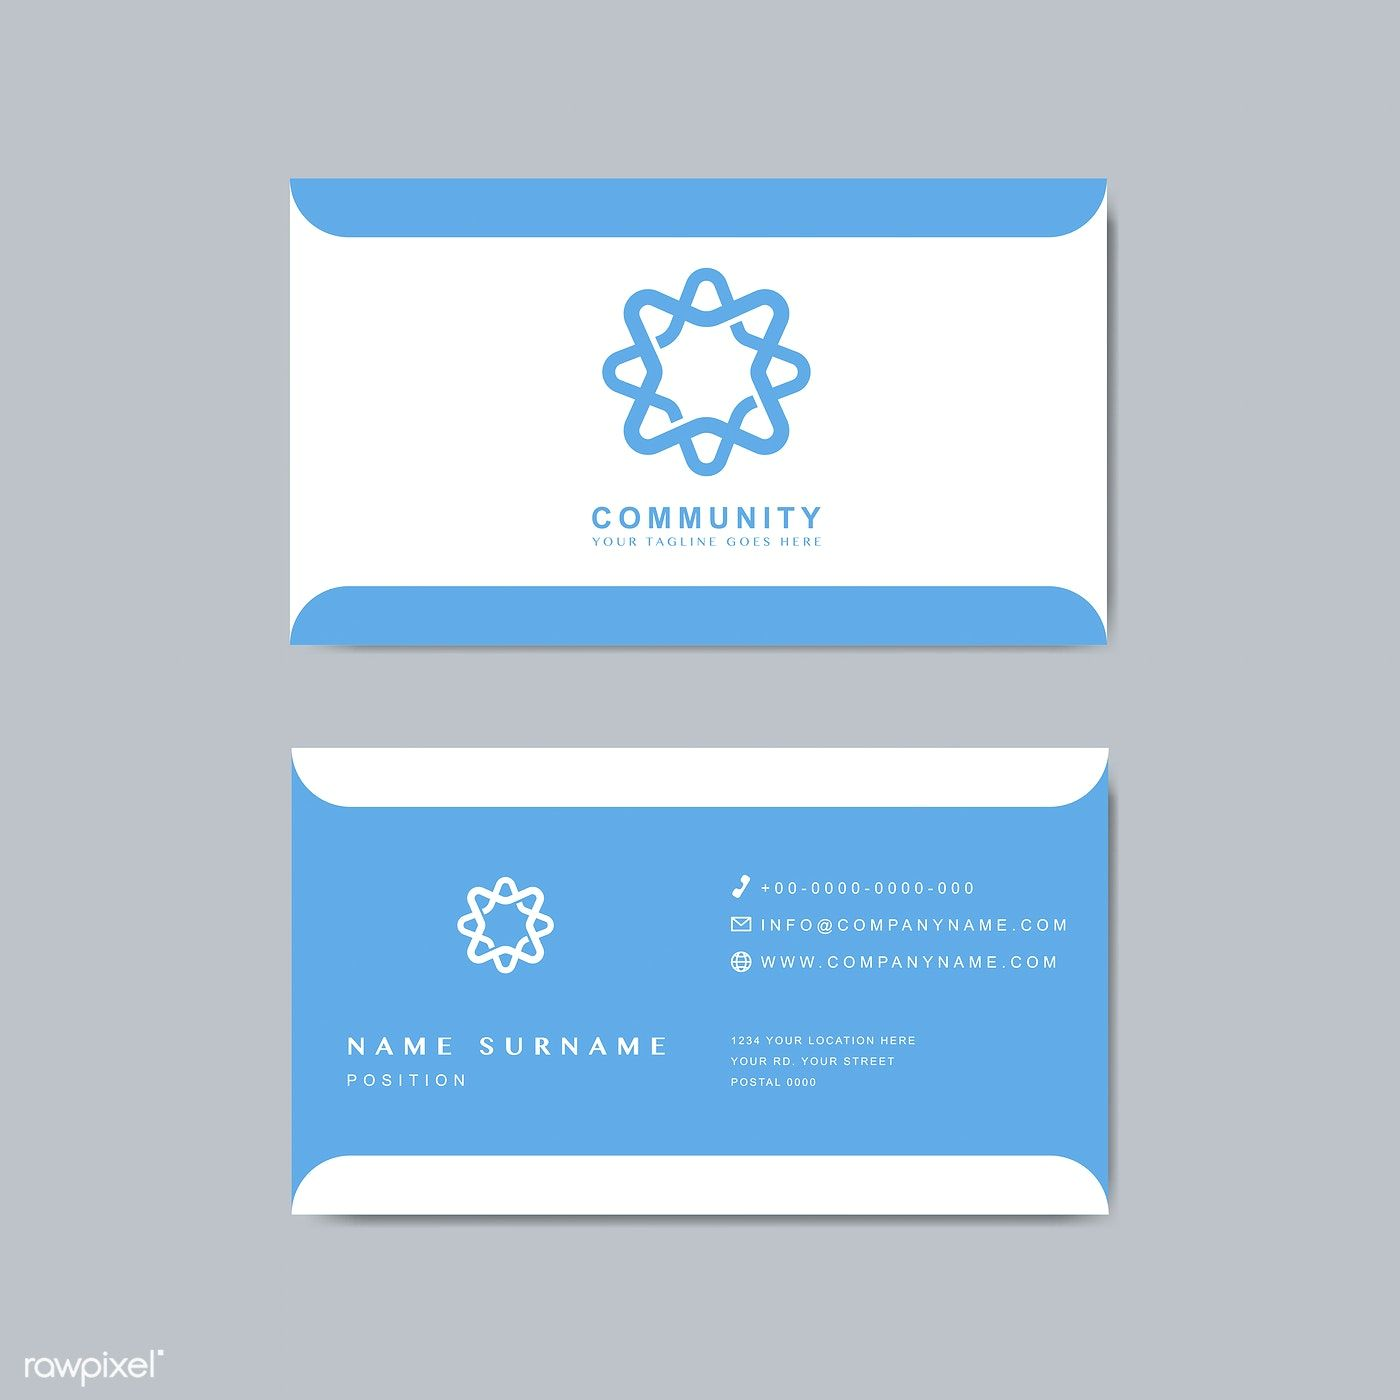 Business Card Sample Design Template Free Image By Rawpixel Com Vector Business Card Design Template Business Cards